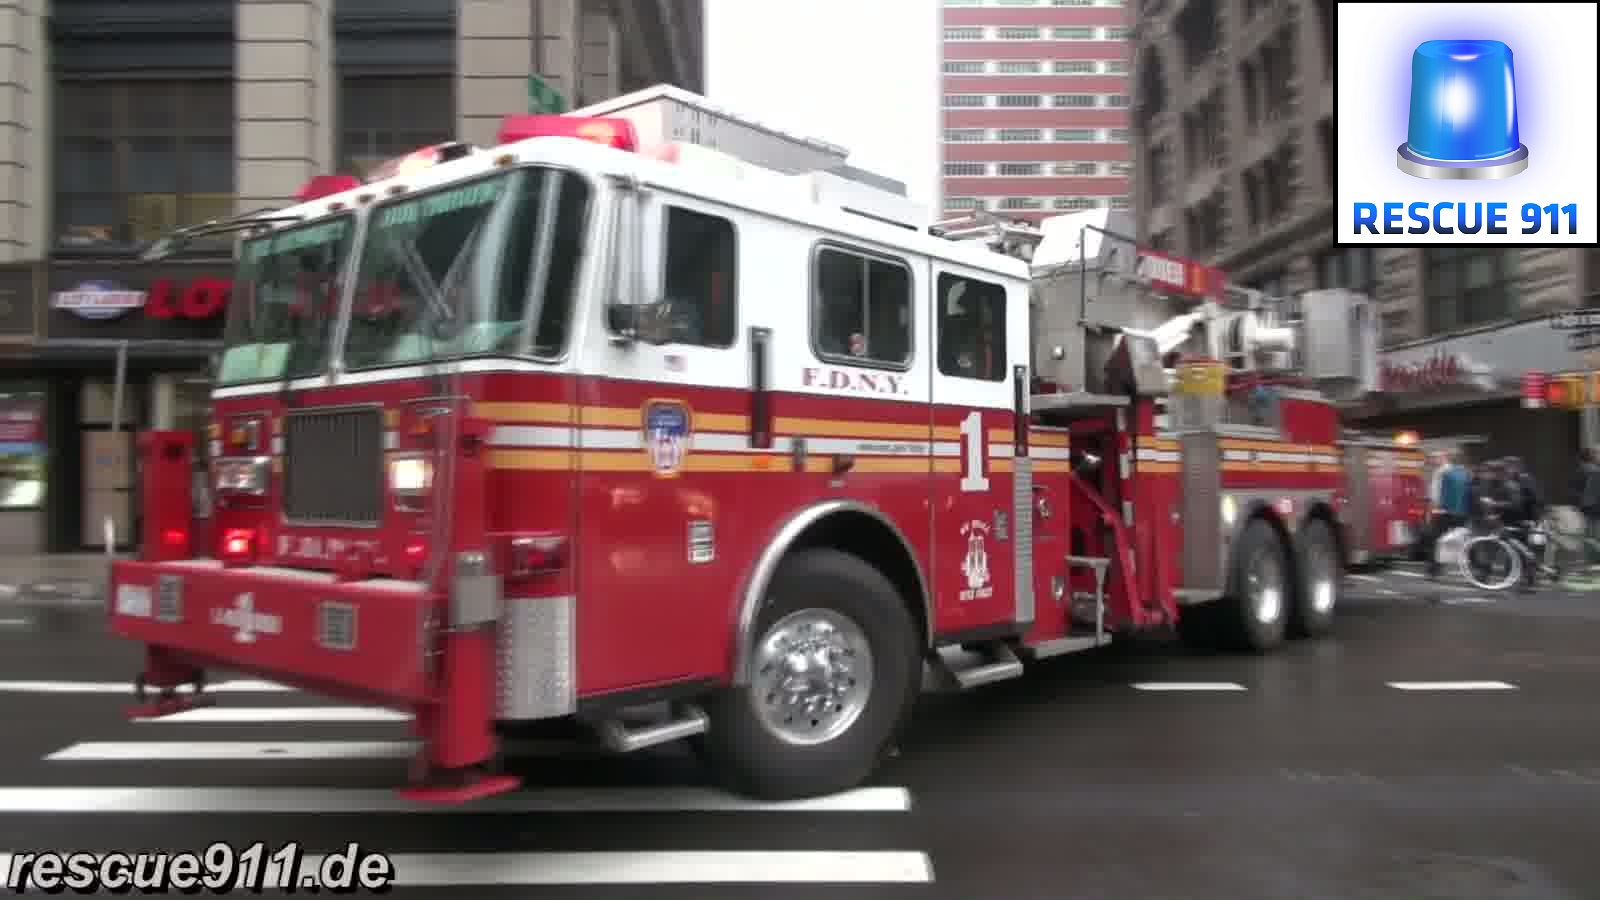 Apparatus FDNY (collection) (stream)